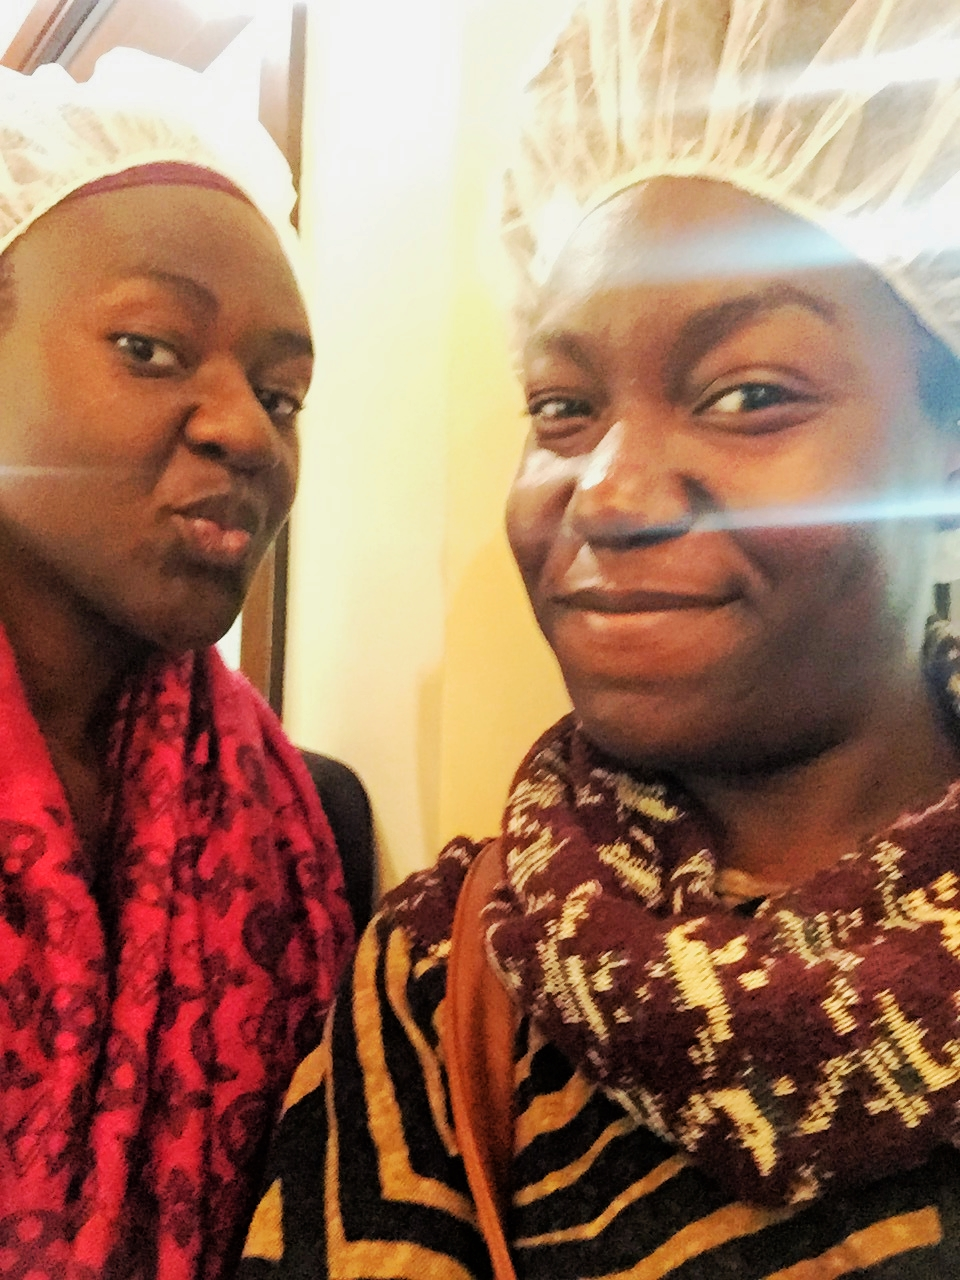 Hermancina & I!!! Hair-net....yes please; Hair-nets were crucial, of course. #NoHairInTheCocoa.